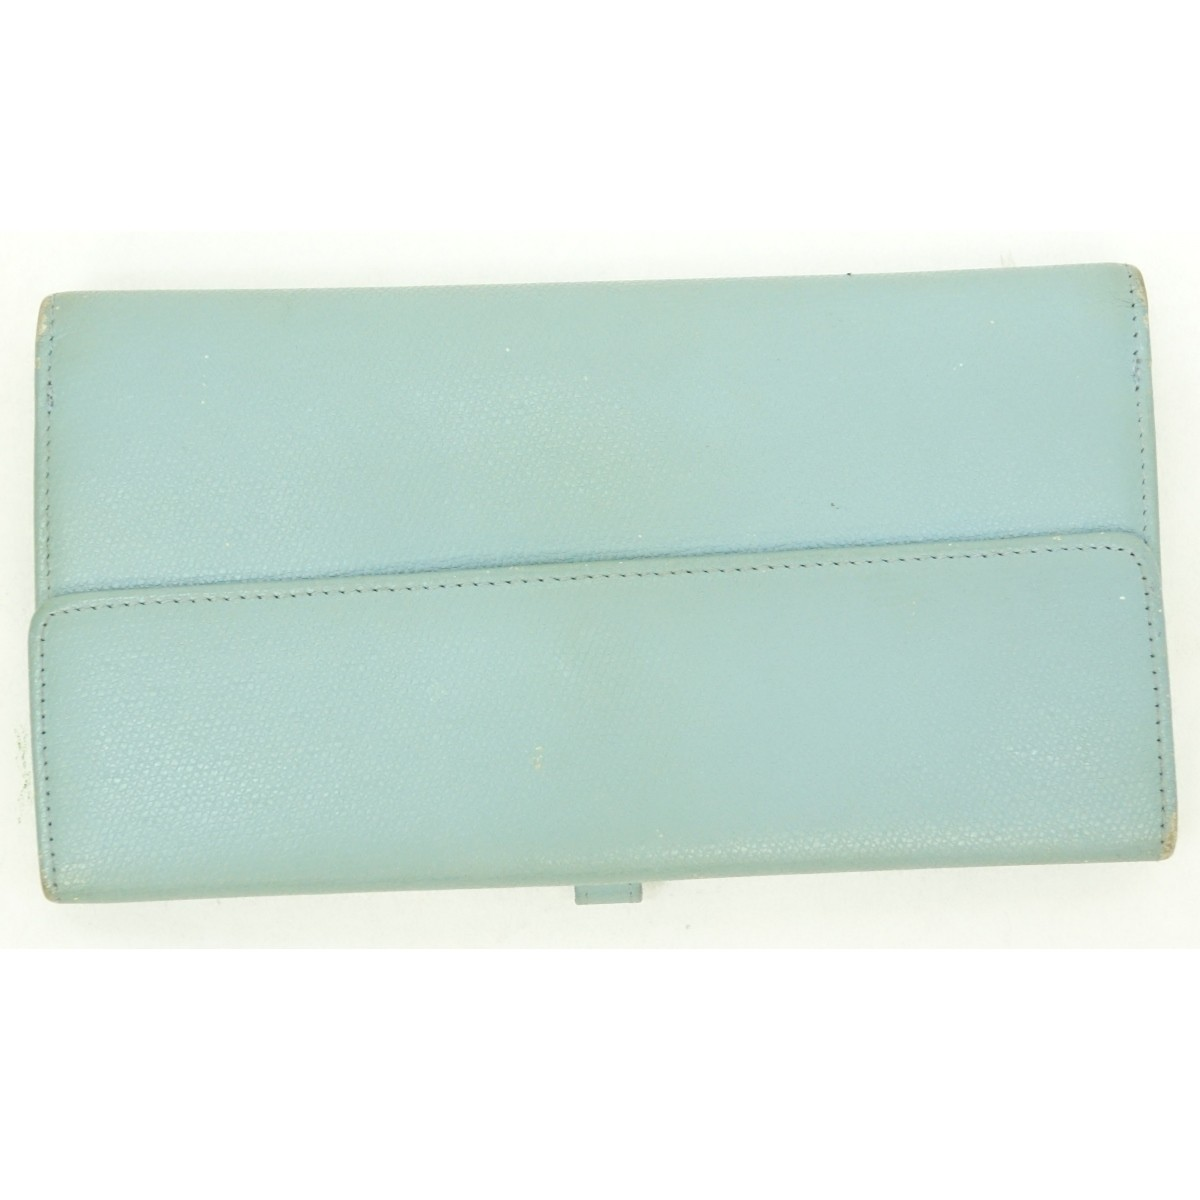 Chanel Light Blue Leather Long Bifold Wallet